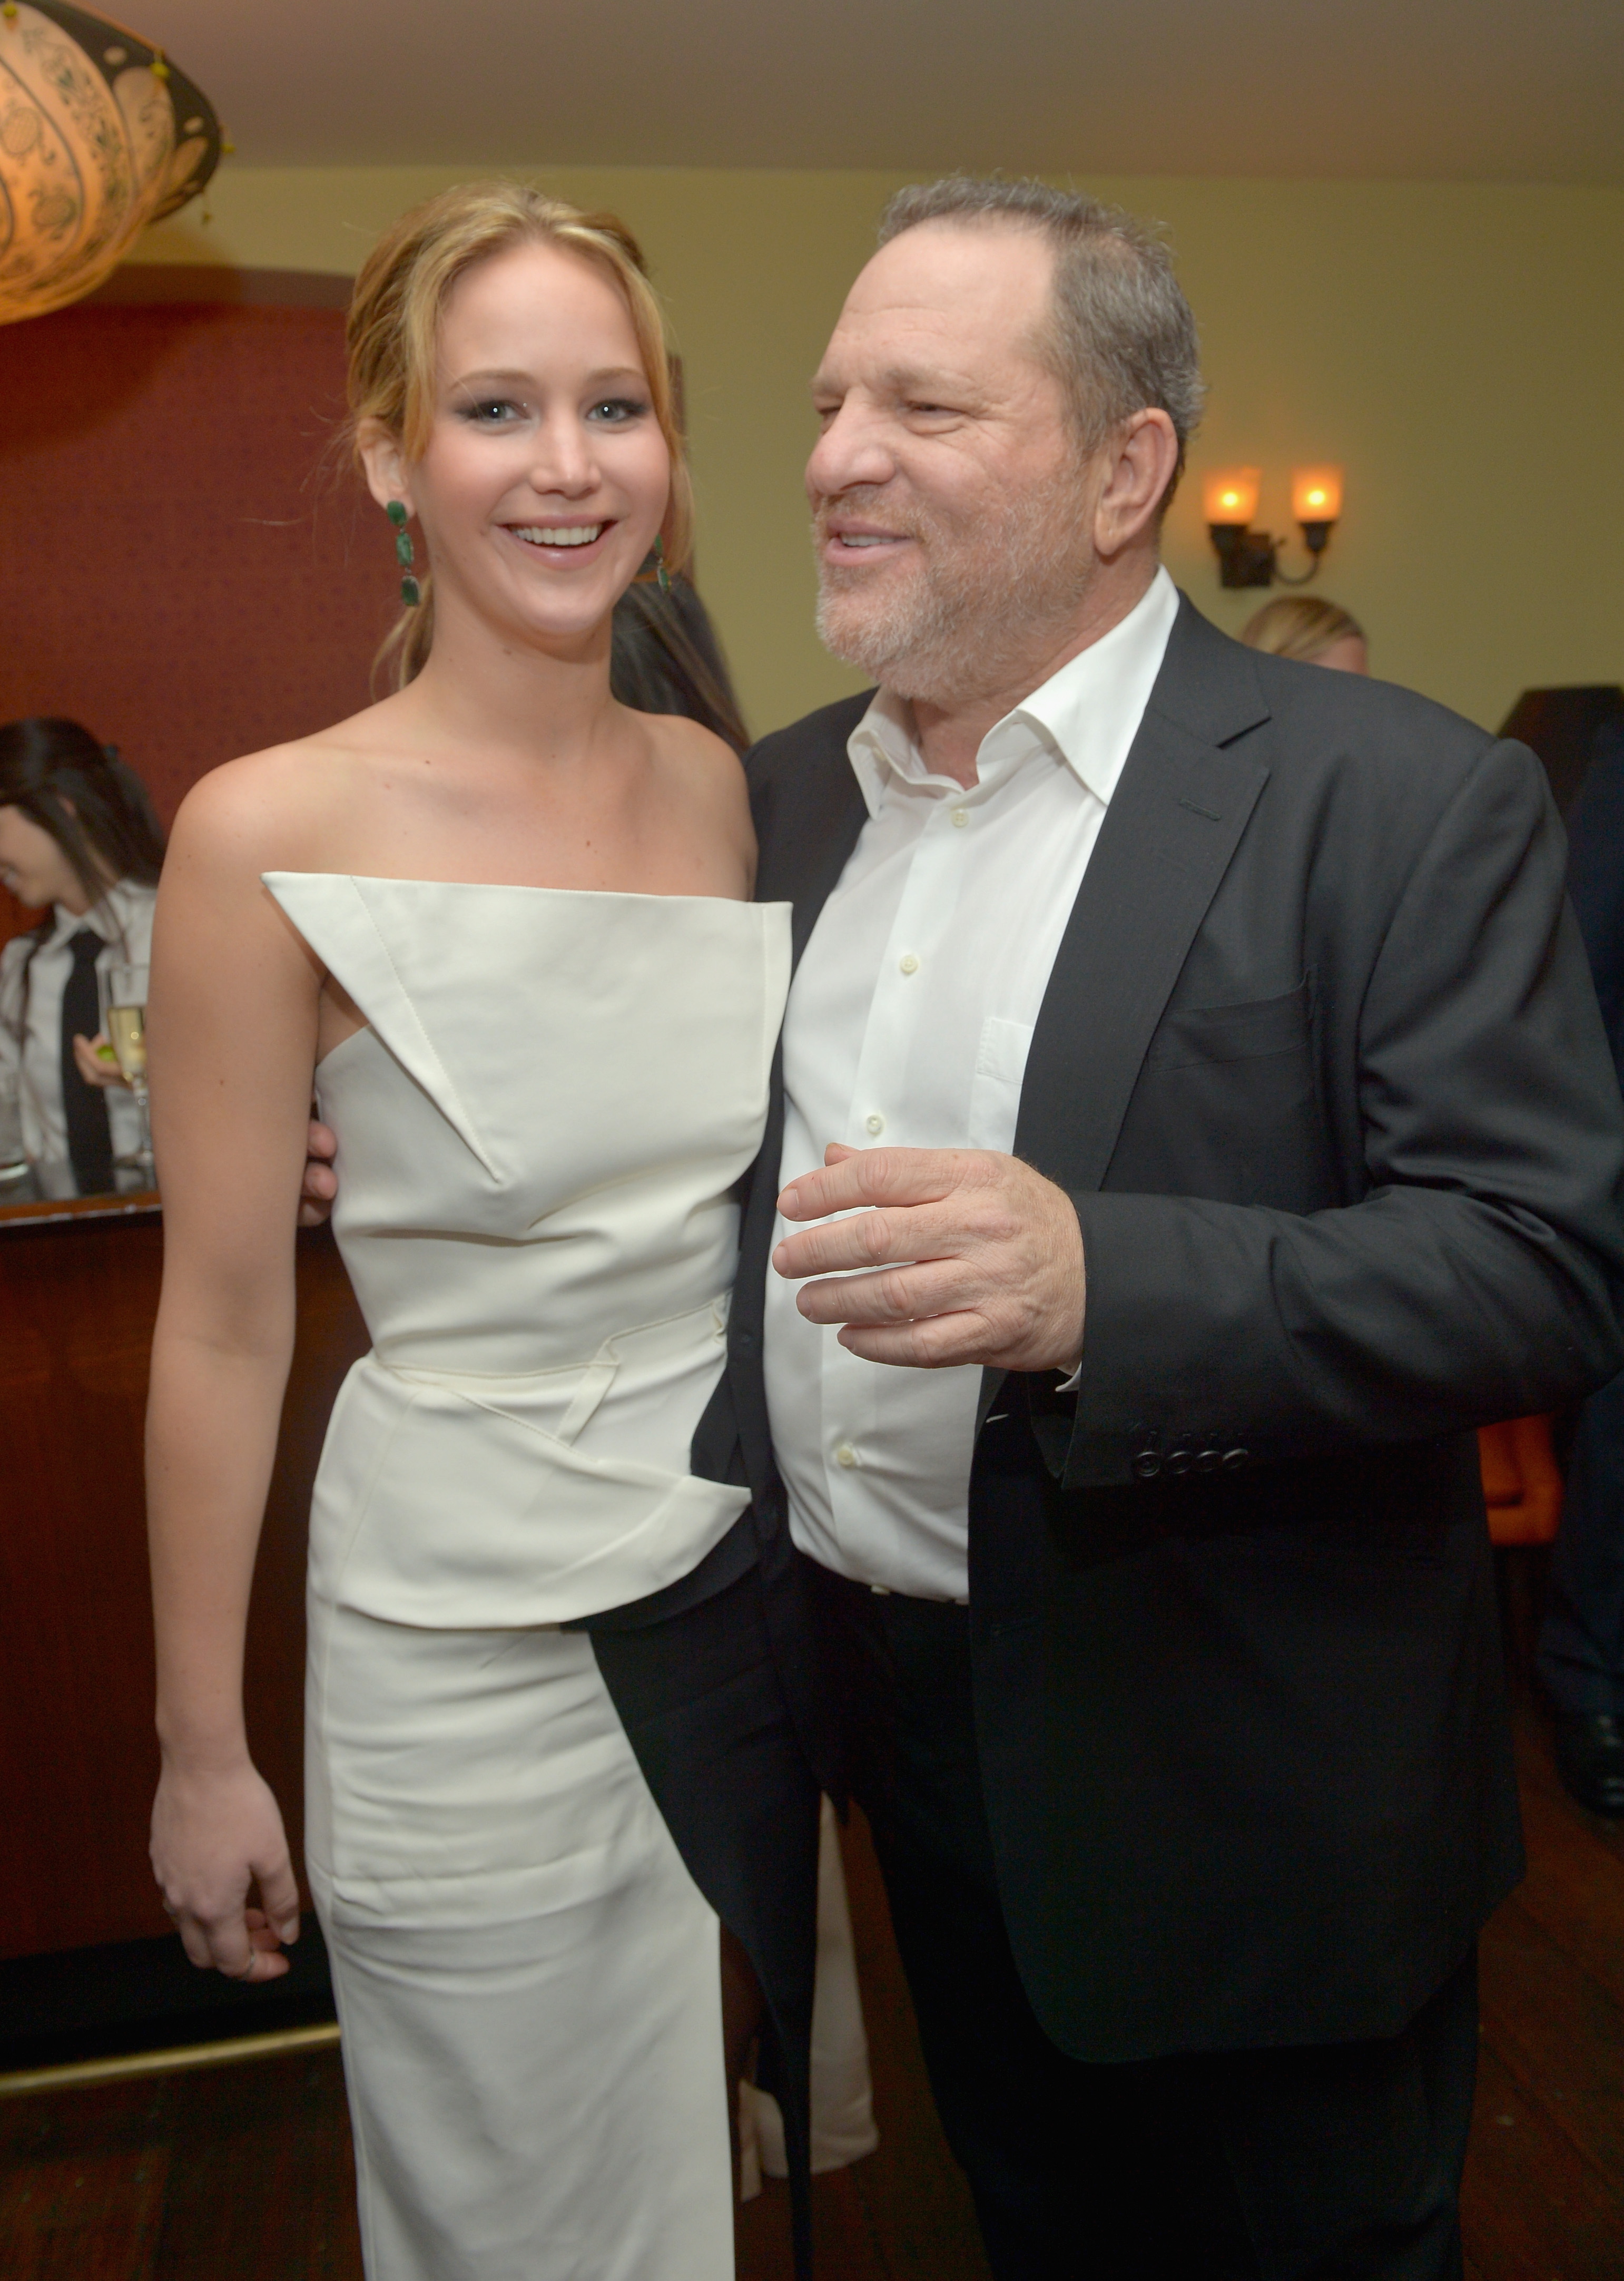 Jennifer Lawrence chatted with Harvey Weinstein at a pre-Oscars bash in LA on Wednesday night.